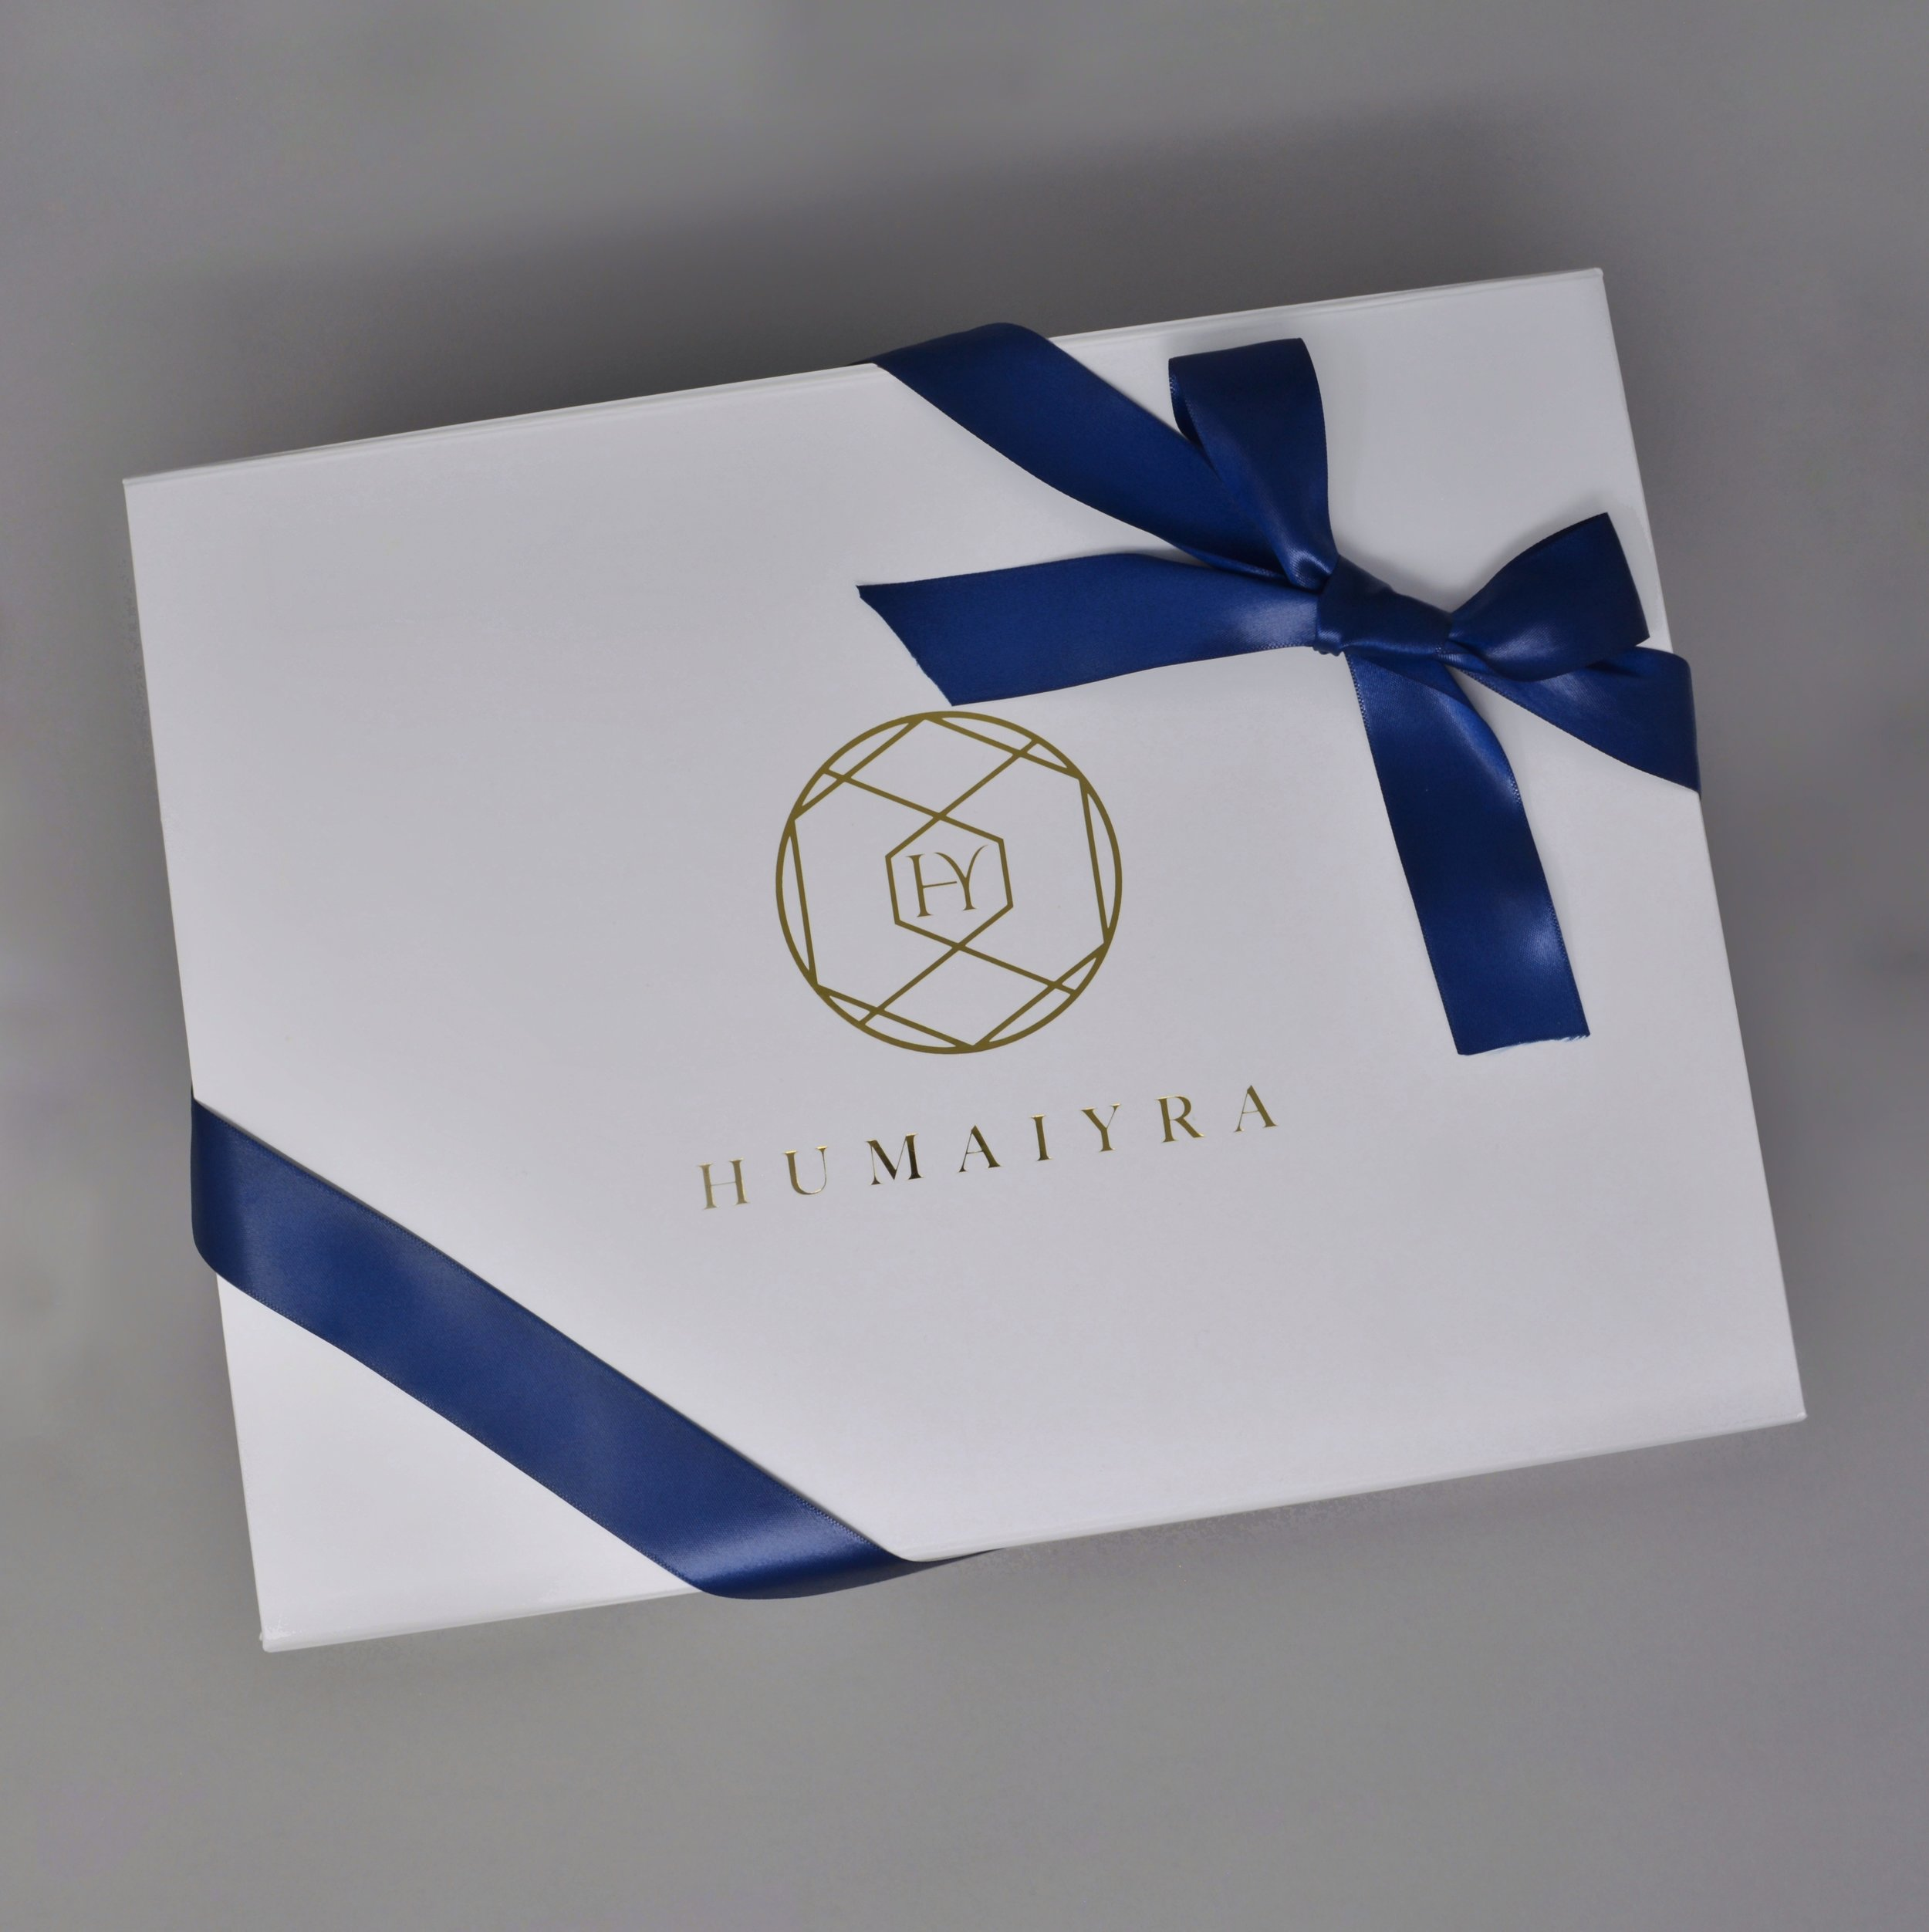 5. The Eagerly Anticipated Arrival - We love sharing our passion for creating jewellery and have loved getting to know you, hearing your story and making something that you'll love for the rest of your life. As our final step we thoroughly check your piece and present you with a Humaiyra certificate of authenticity along with an official UK assay office hallmark. Your finished bespoke piece will be presented in our luxurious gift packaging, ready to be securely delivered to your address or collected in person. This jewel is now yours to enjoy forever!